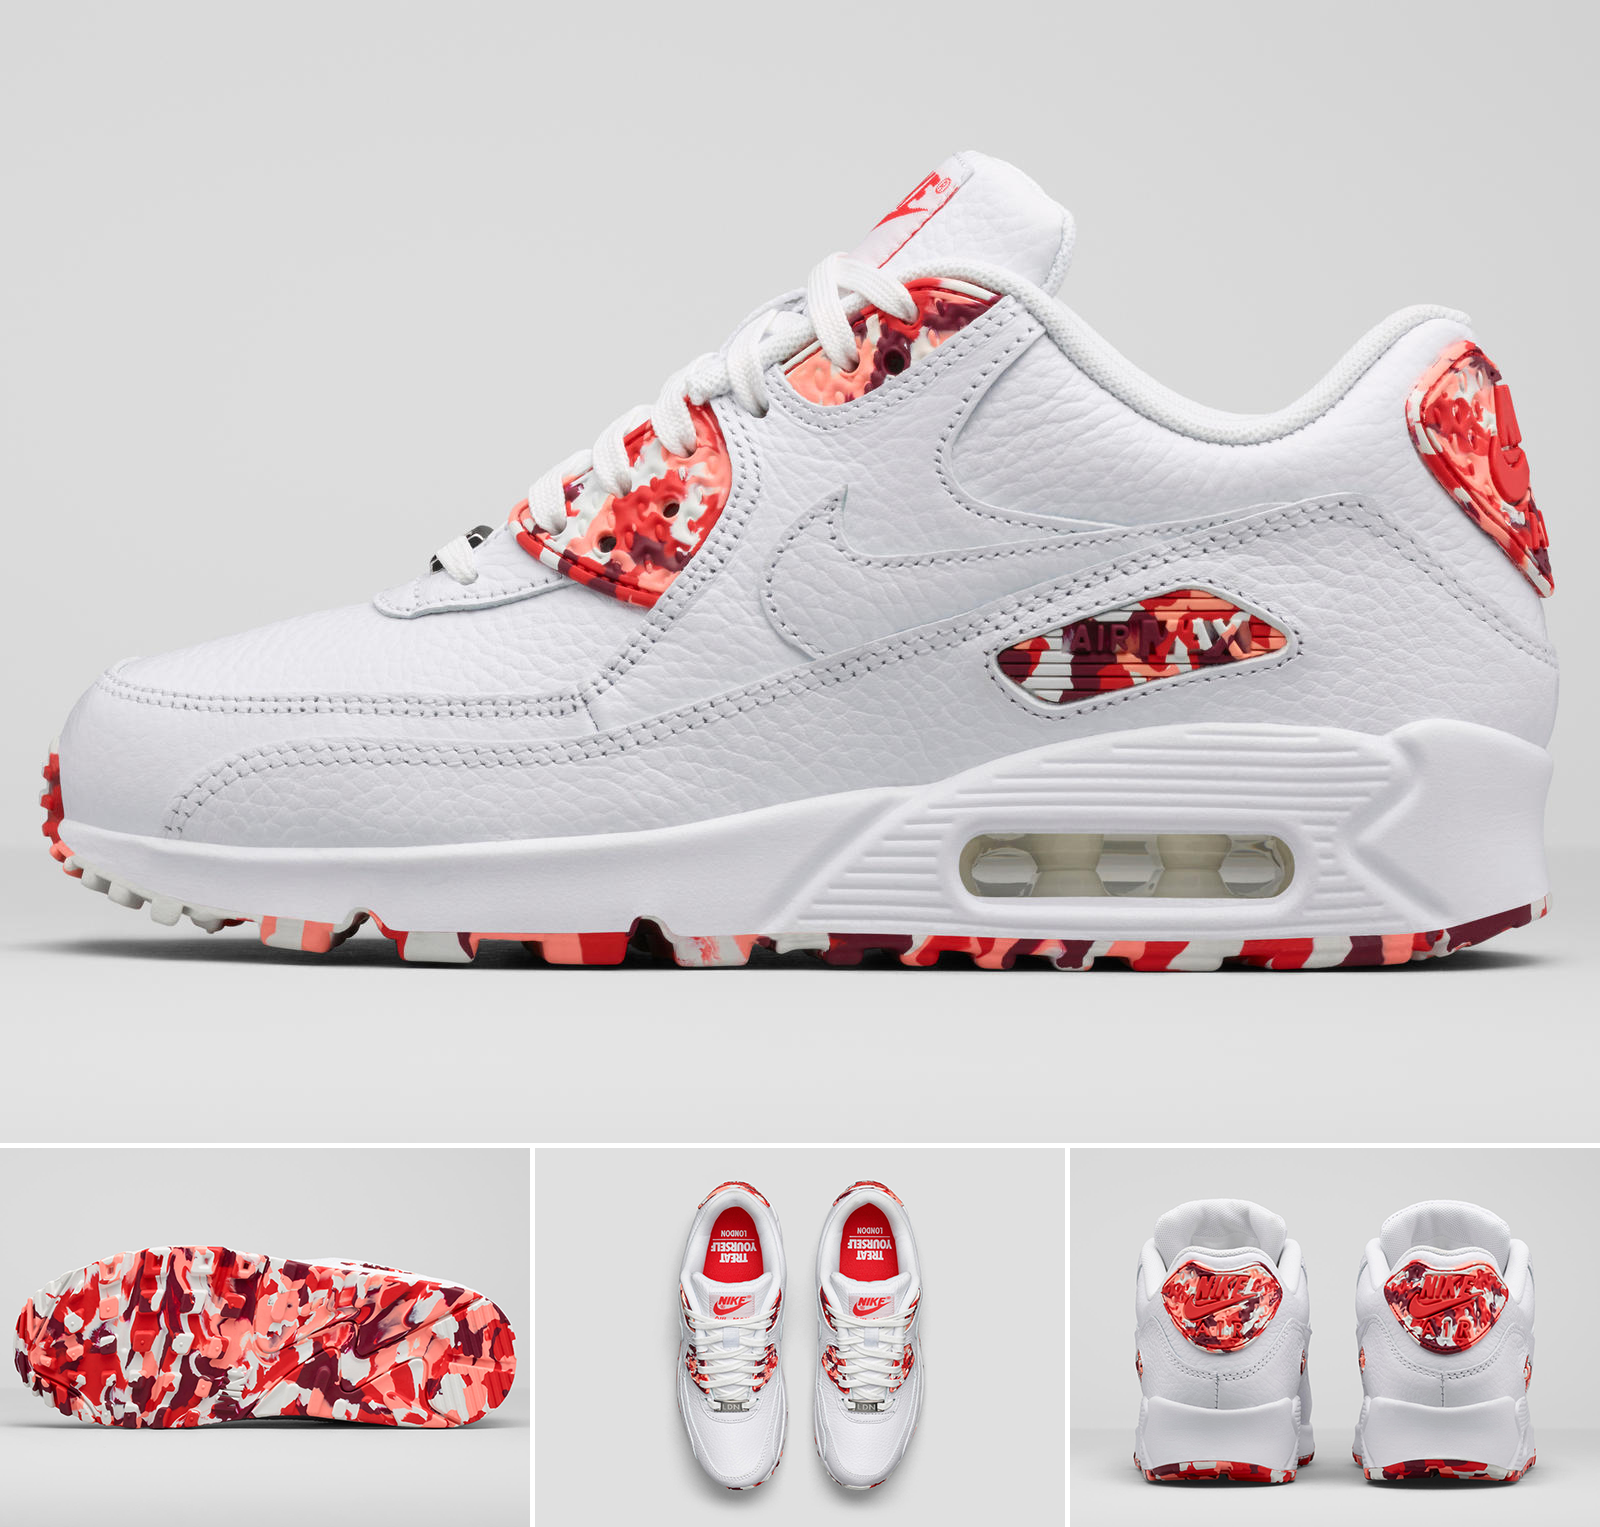 Nike-air-max-90-sweet-city-pack-london-eton-mess-2